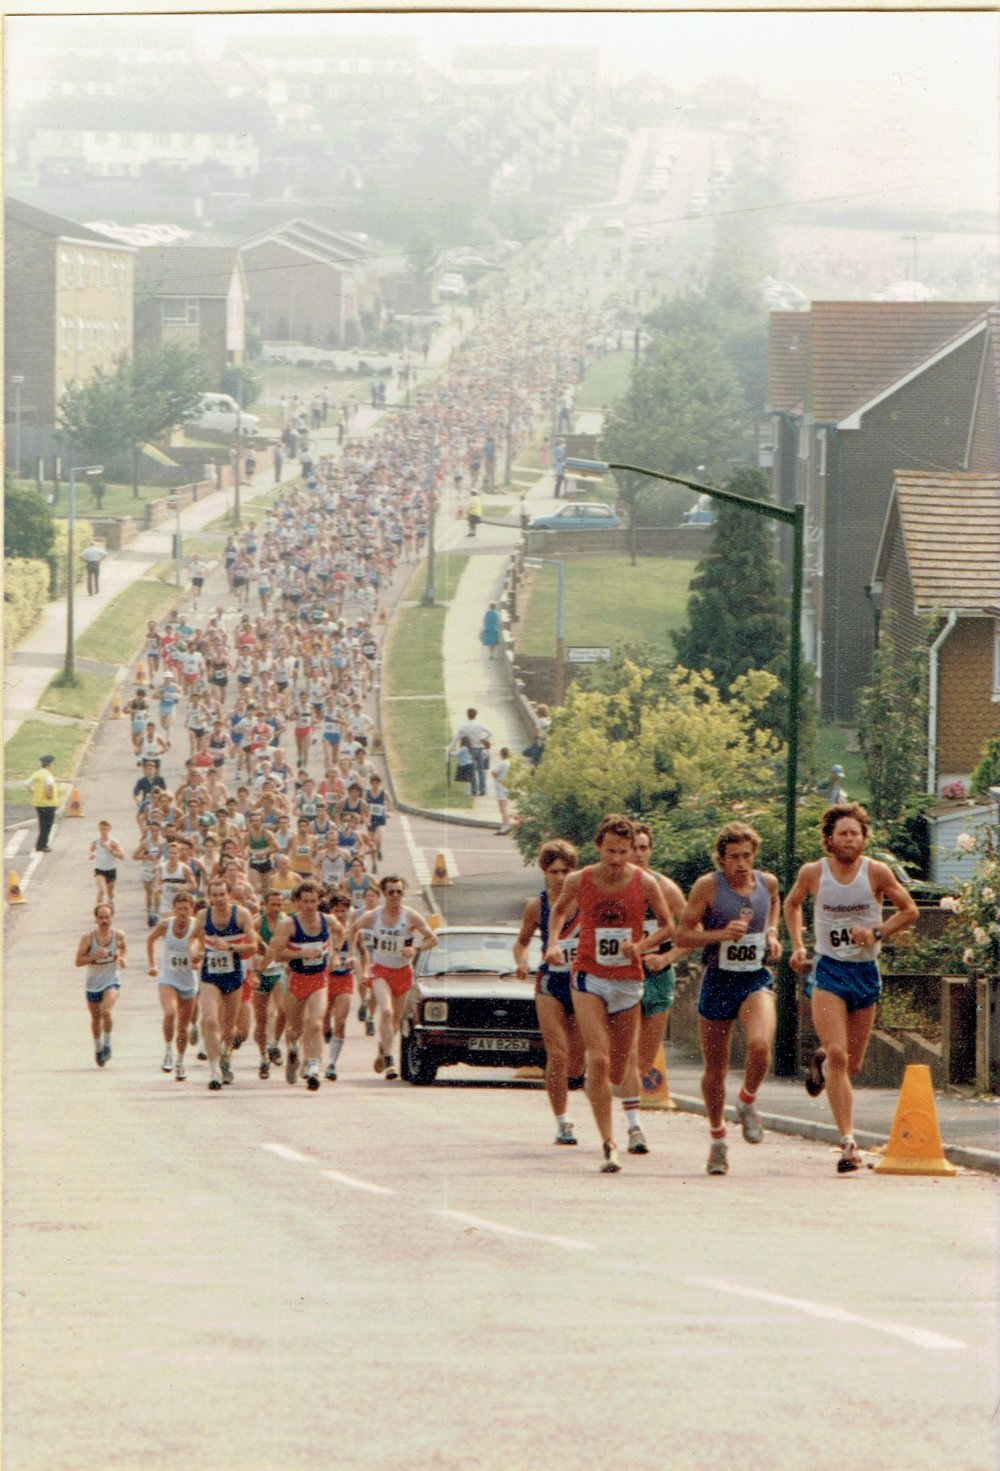 Ah! Those were the days - enjoying the view at the front (in the red vest and white shorts)